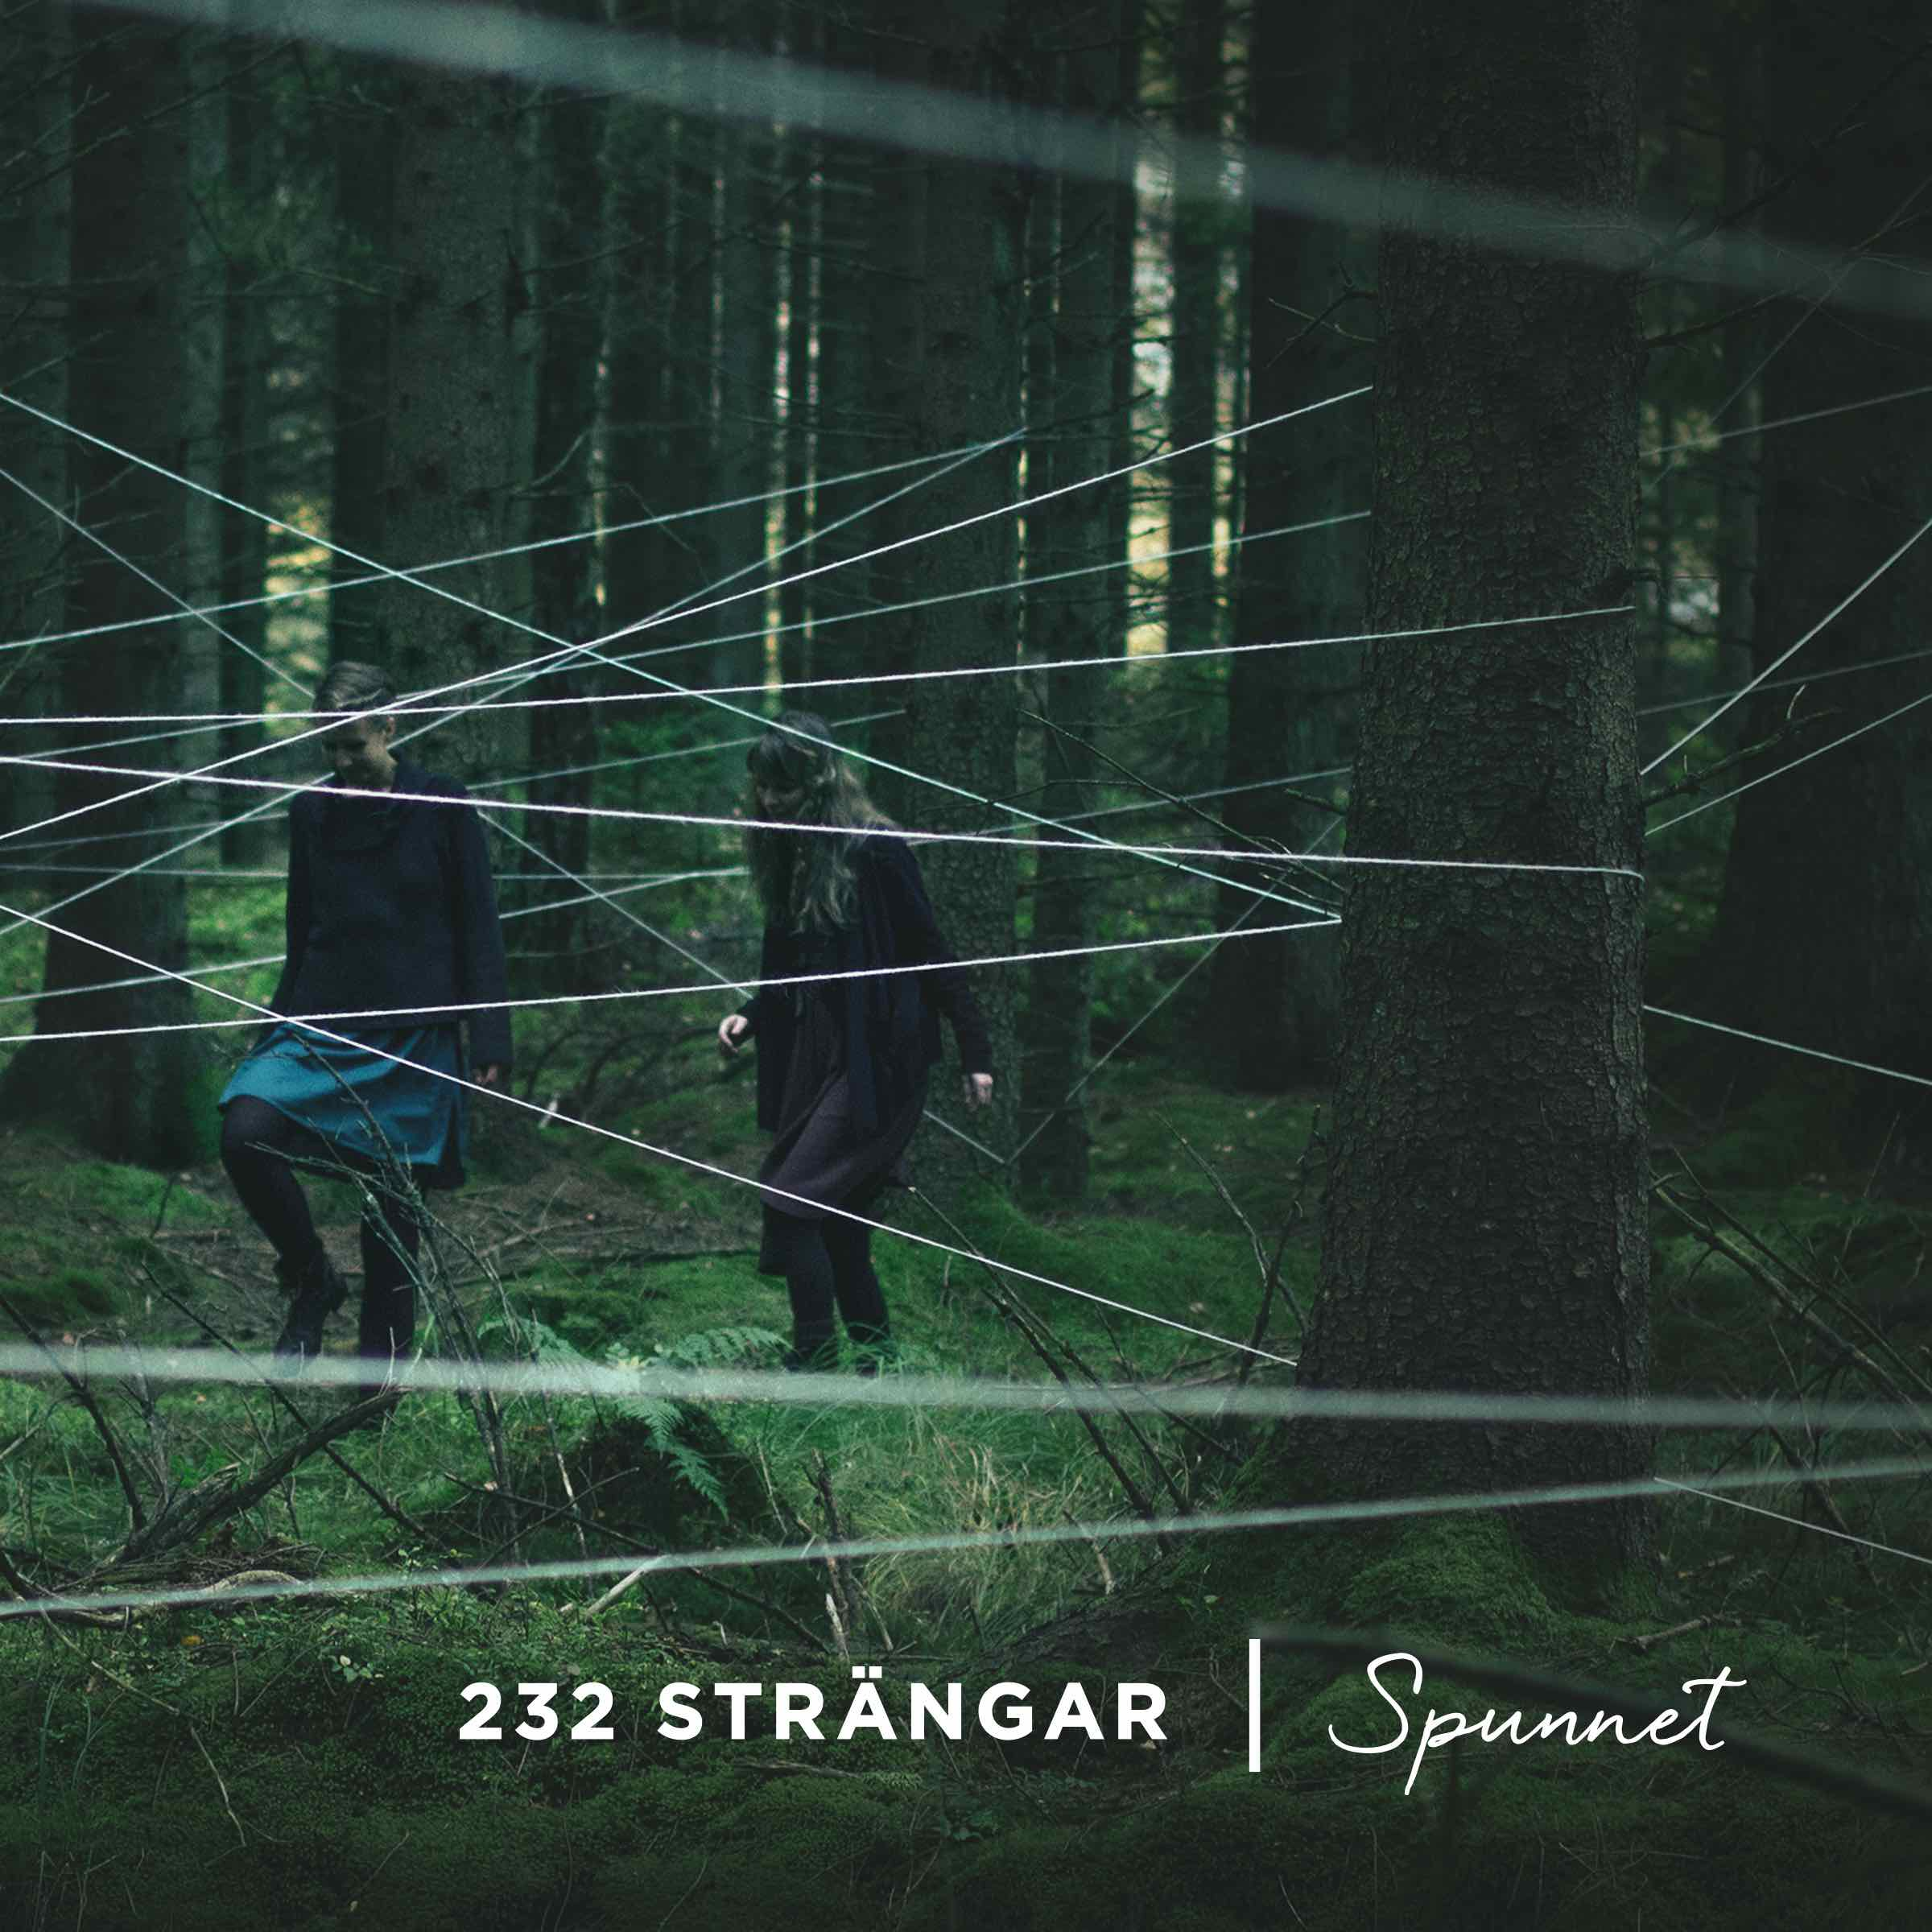 DOWNLOAD: Visit iTunes Music Store or or your favourite download store. 232 Strängar - Spunnet monophon MPHFL004, 2016.